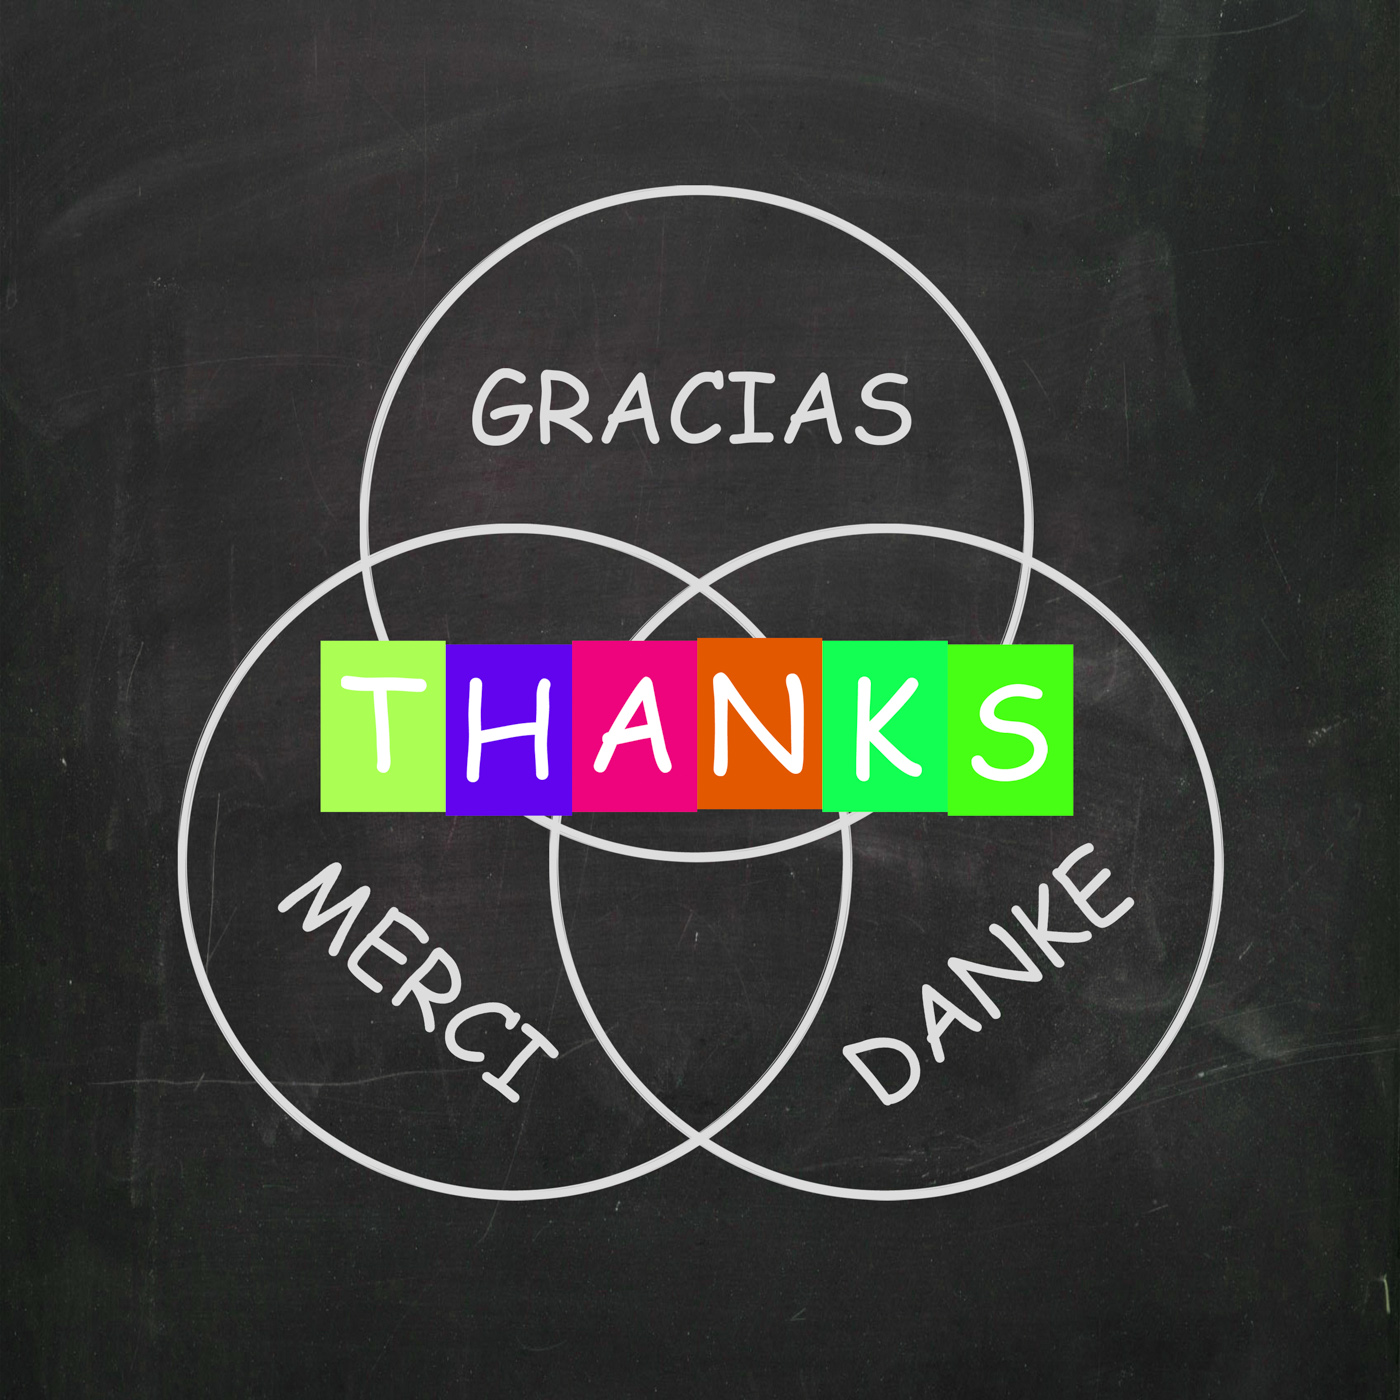 stockvault-gracias-merci-and-danke-mean-thanks-in-foreign-languages224660-1528734010.jpg